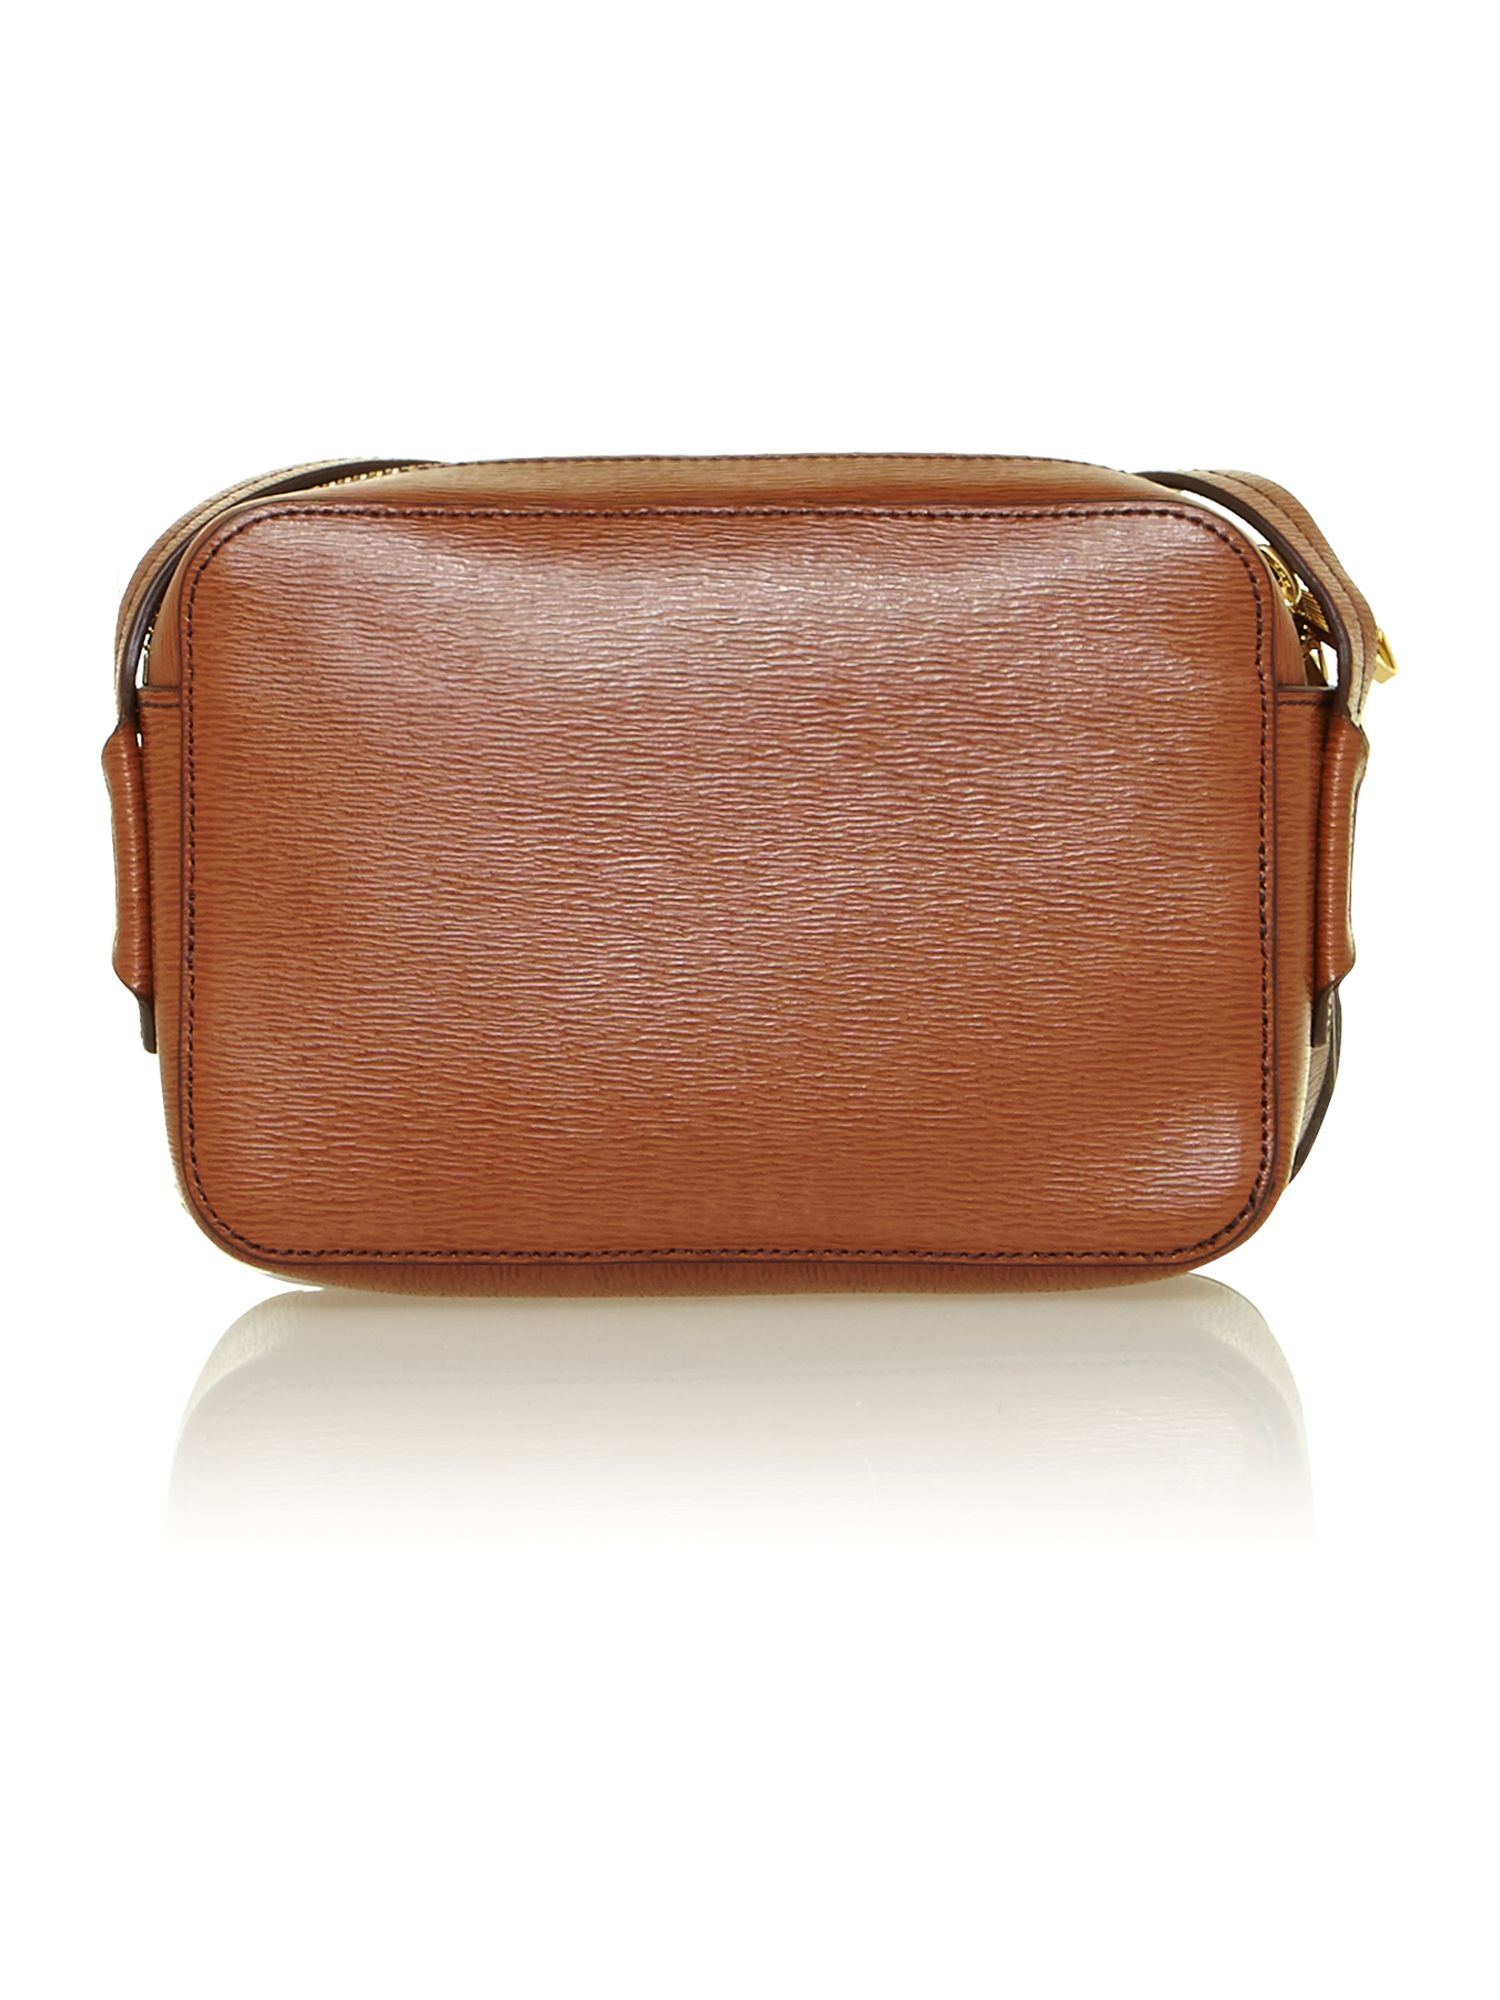 Tate tan mini crossbody bag